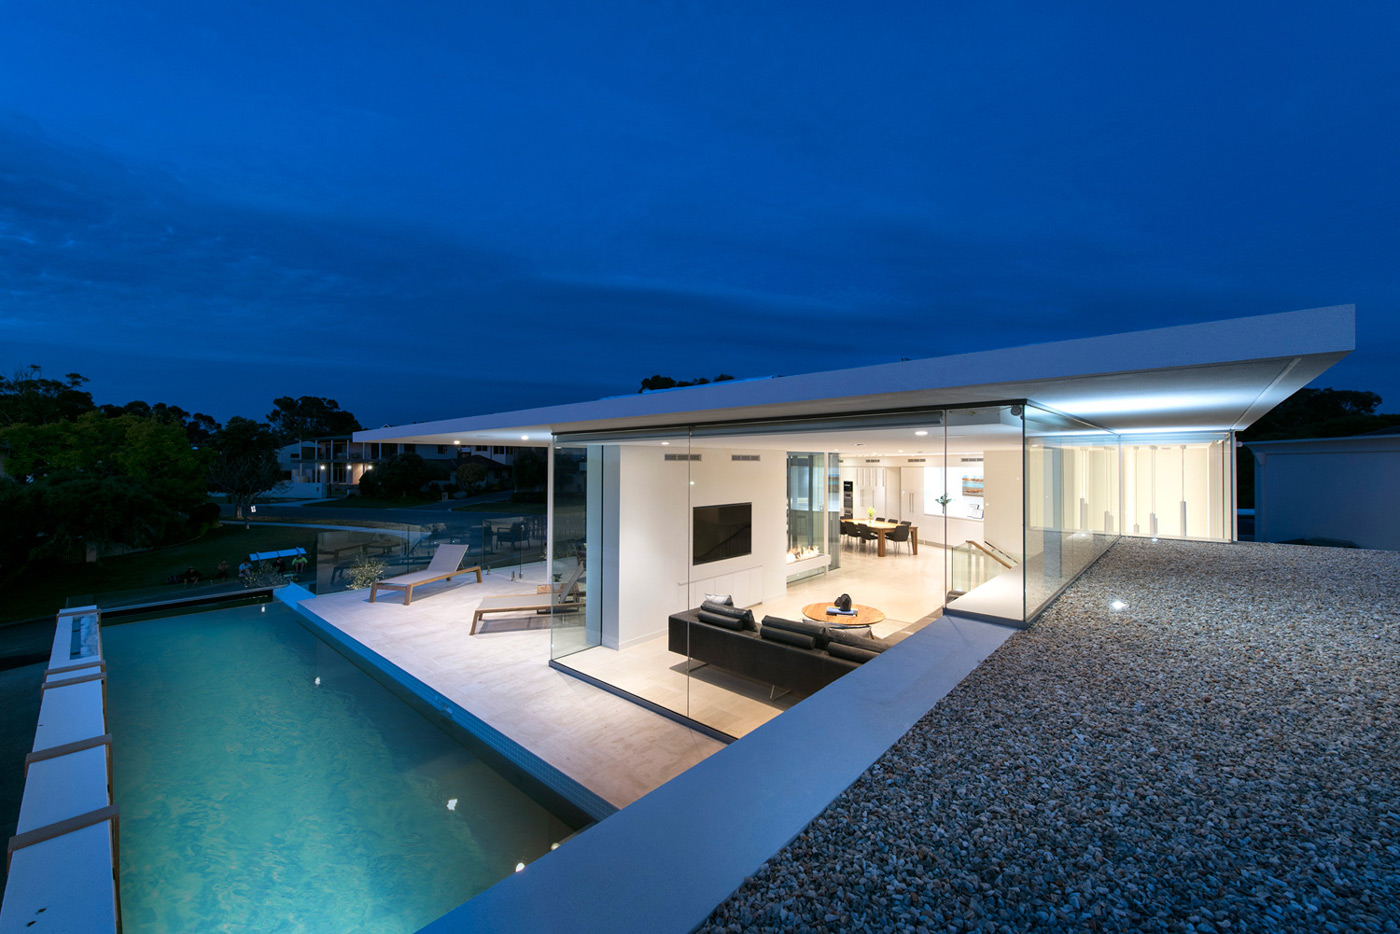 Pool Lighting, Glass Walls